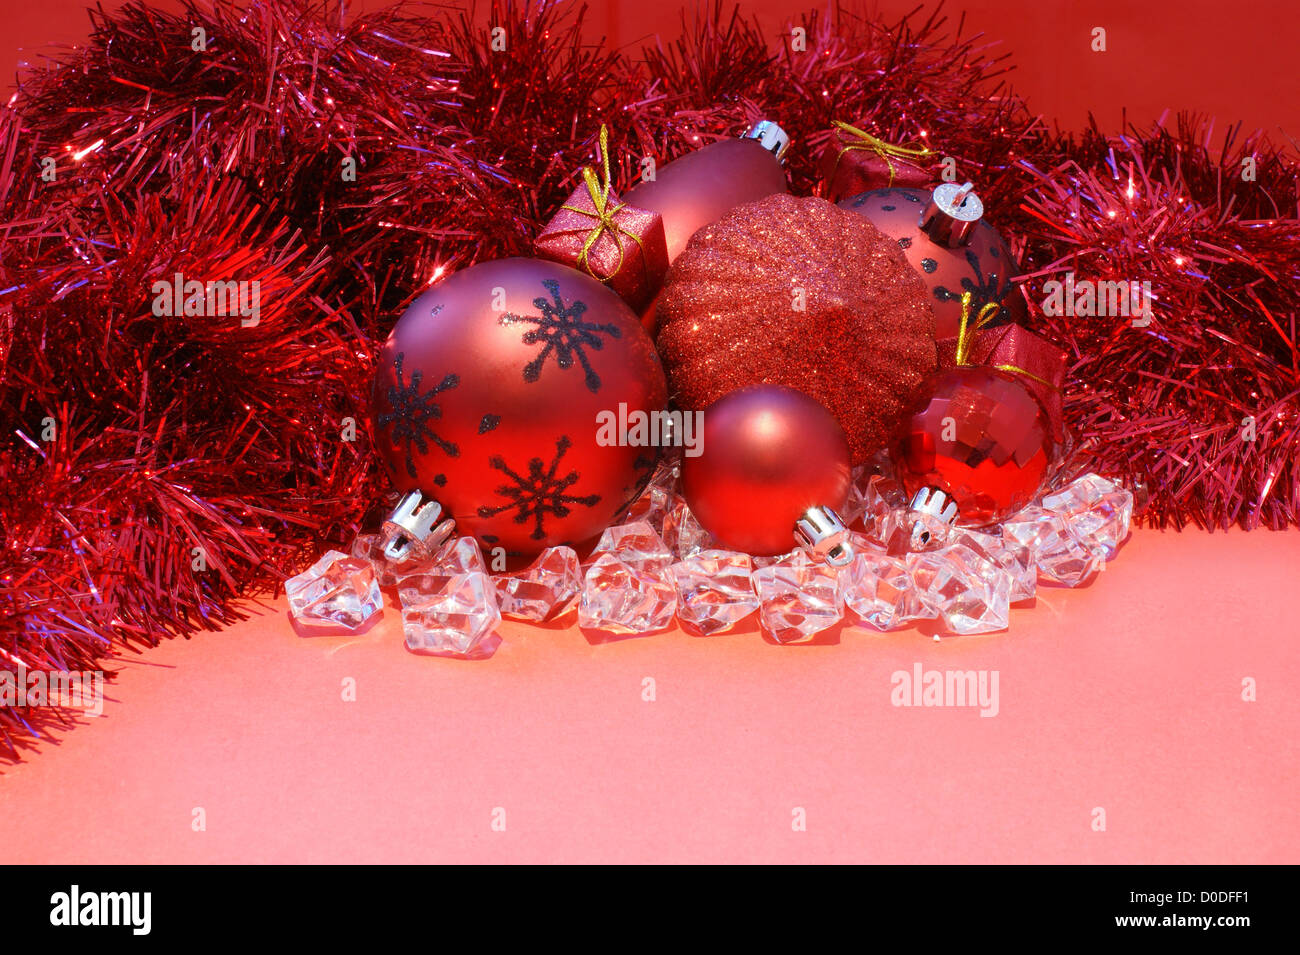 Christmas background with decorations, tinsel and gifts - Stock Image